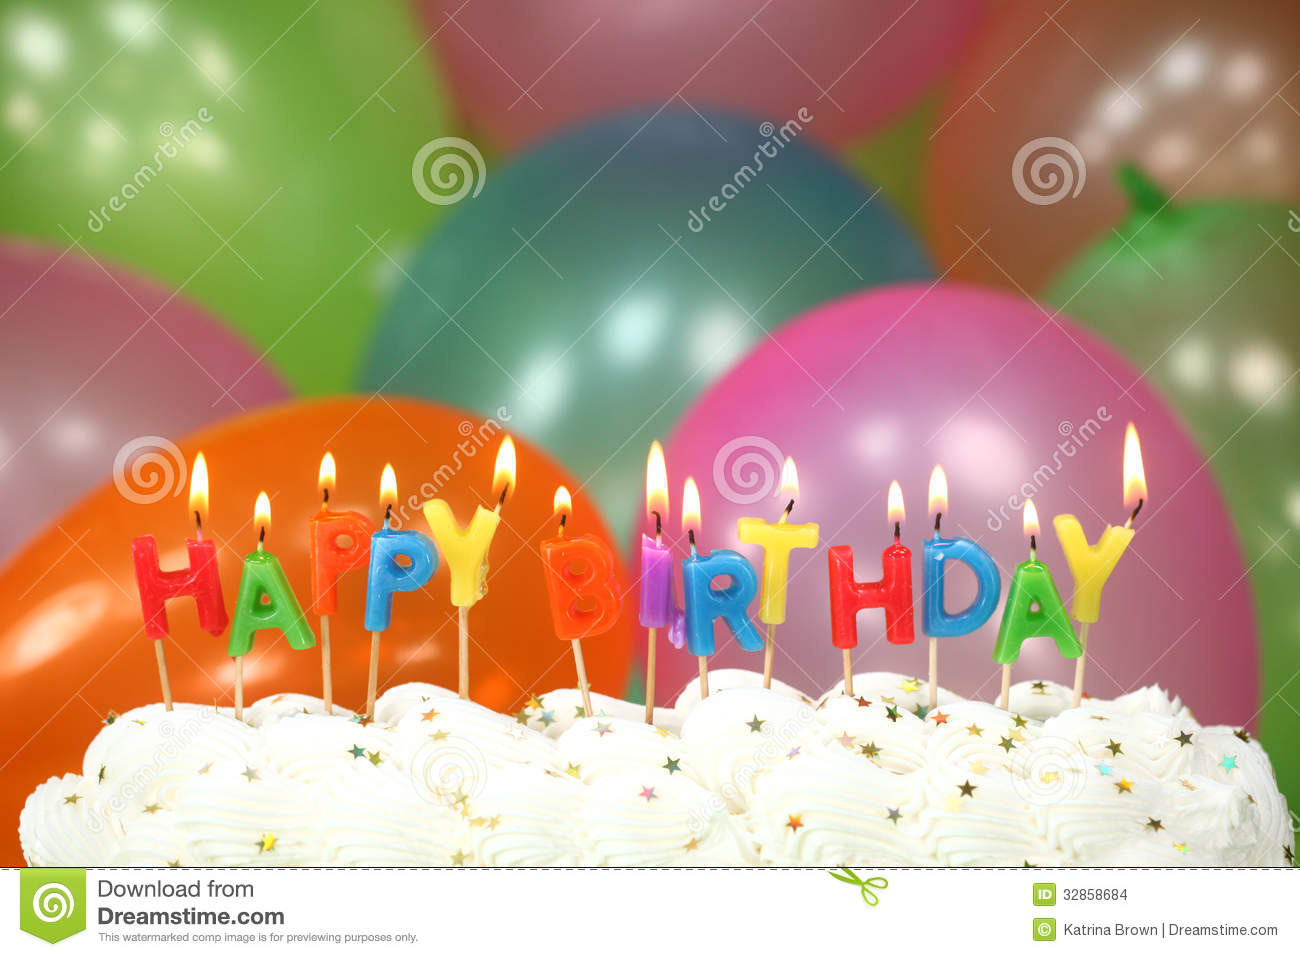 Birthday Cake With Candles And Balloons  Celebration With Balloons Candles And Cake Stock